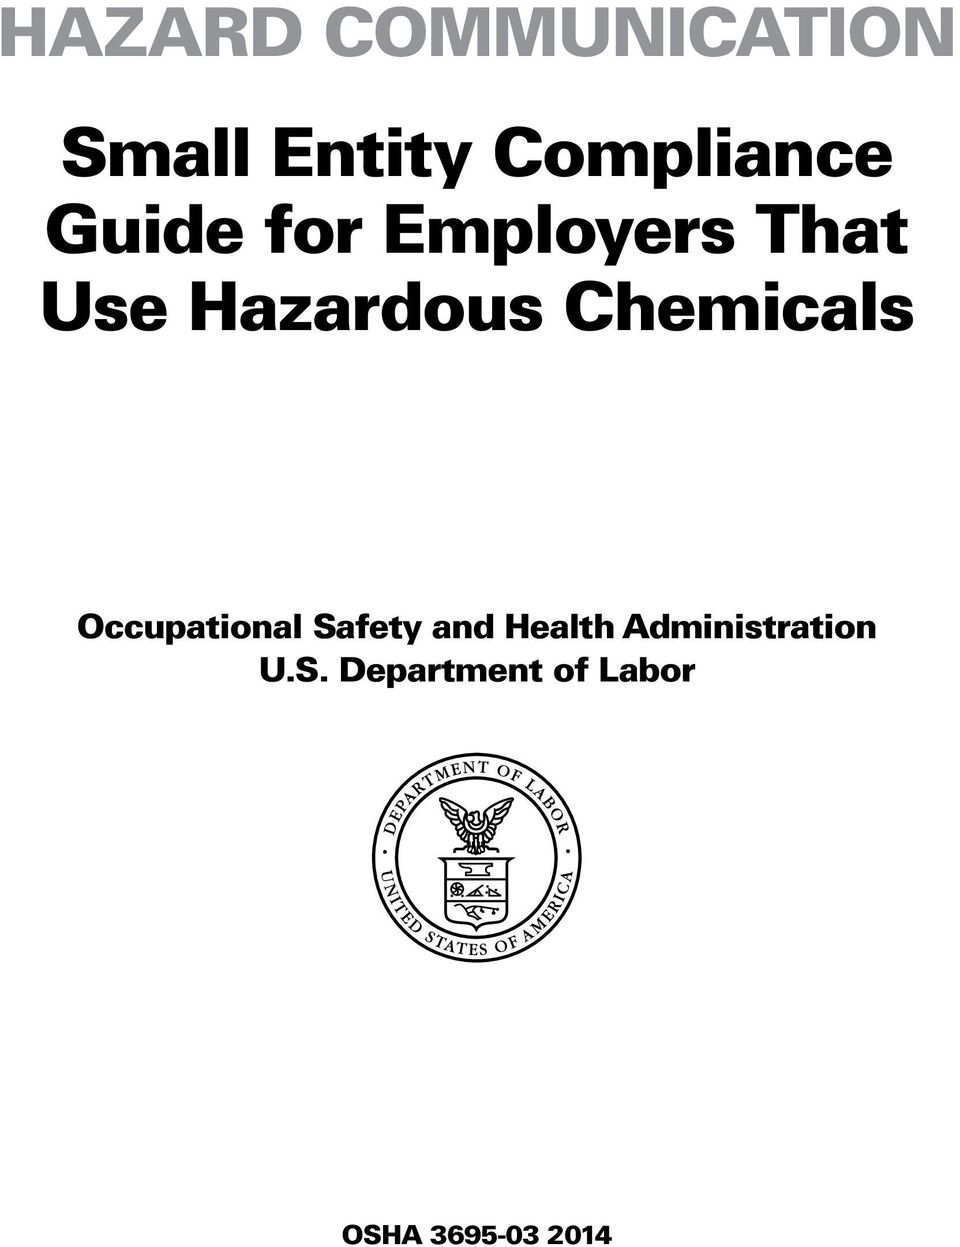 Chemicals Occupational Safety and Health